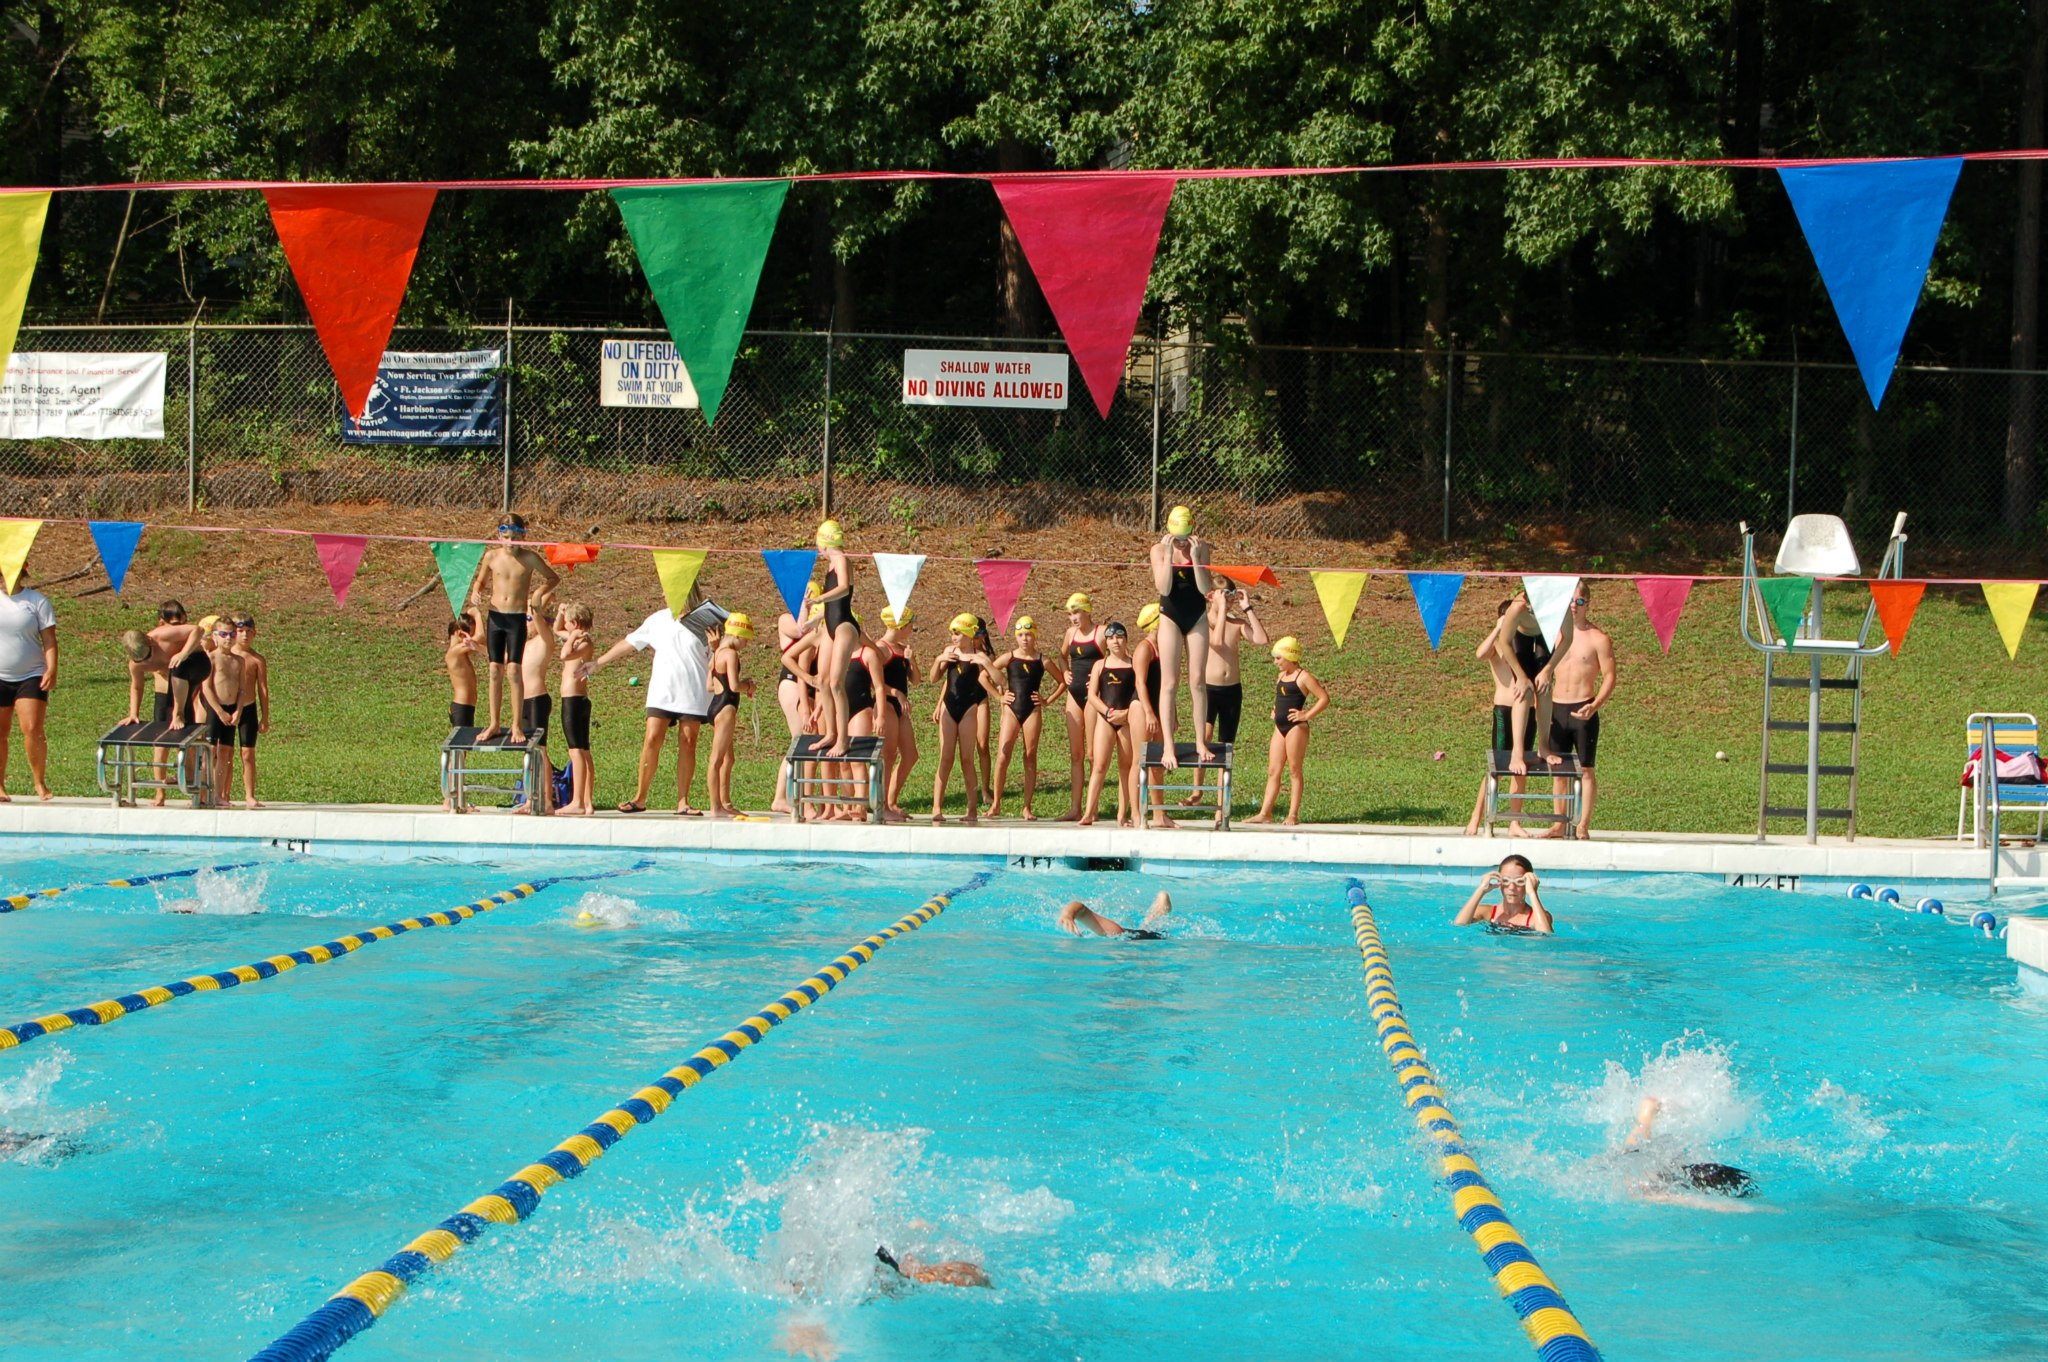 Upcoming swim team events murraywood swim racquet club - Emergency action plan swimming pool ...